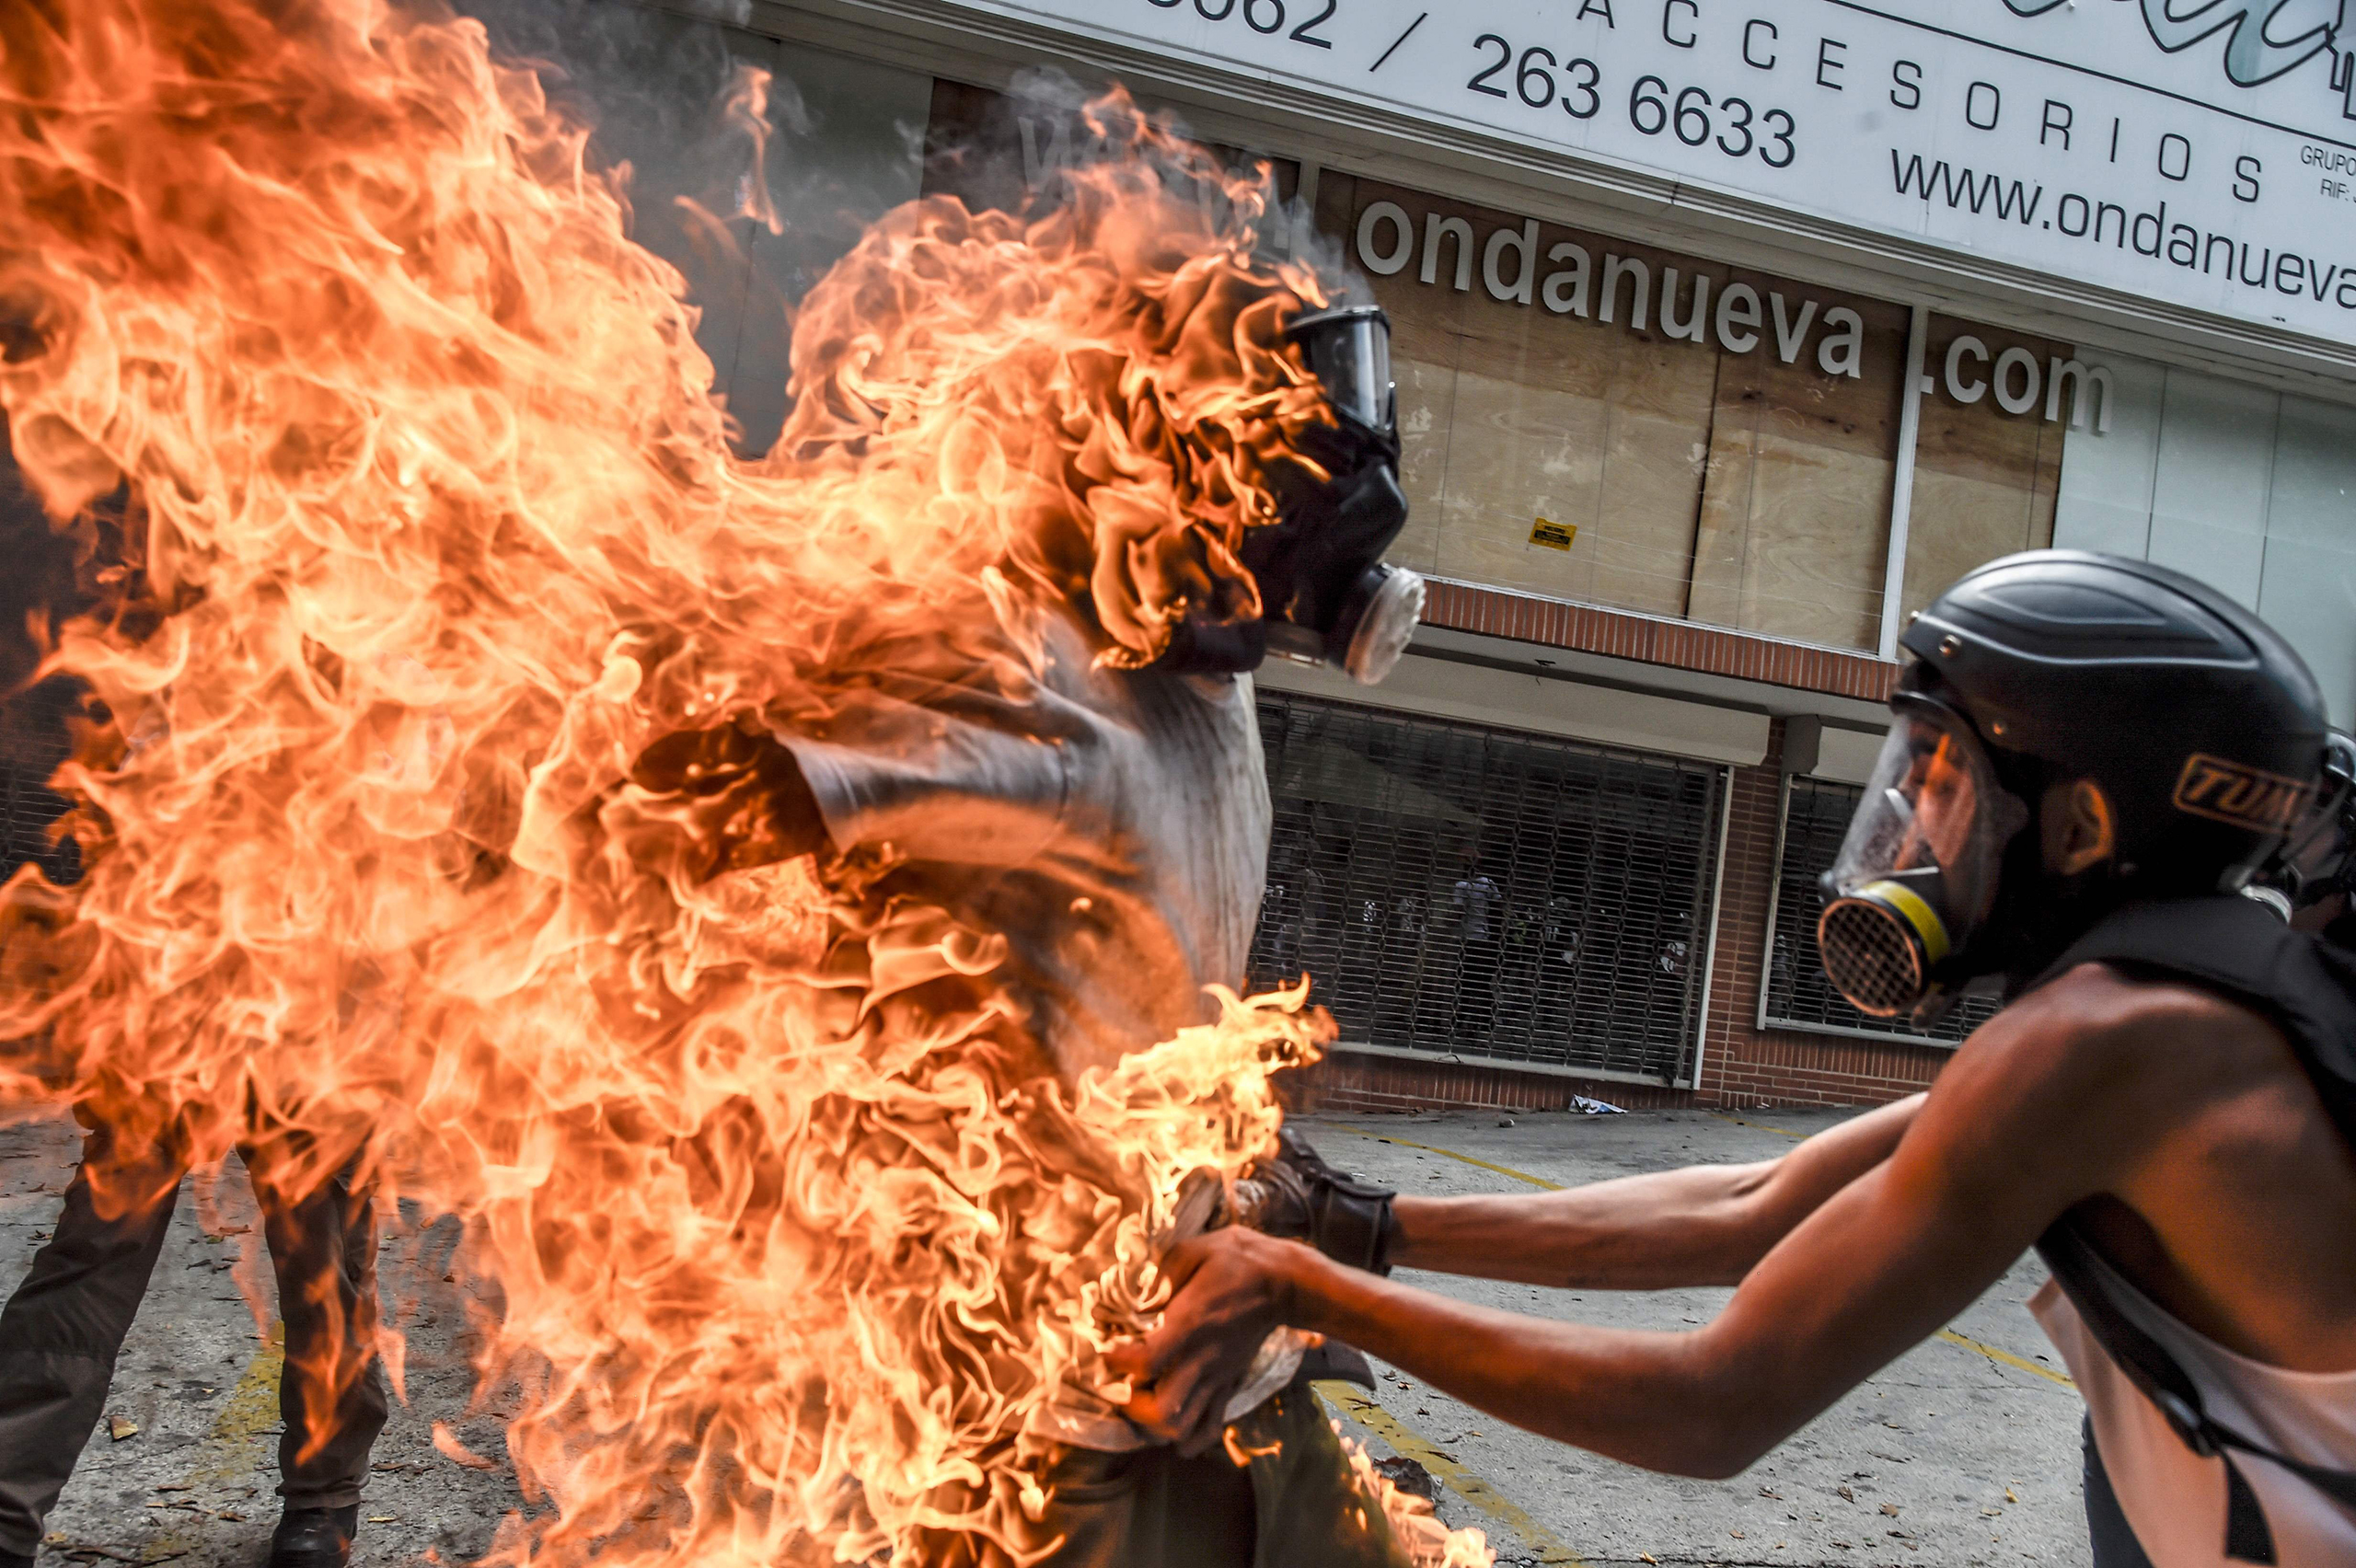 A demonstrator lifts the shirt off of a man who was accidentally set ablaze in Caracas on May 3, 2017.